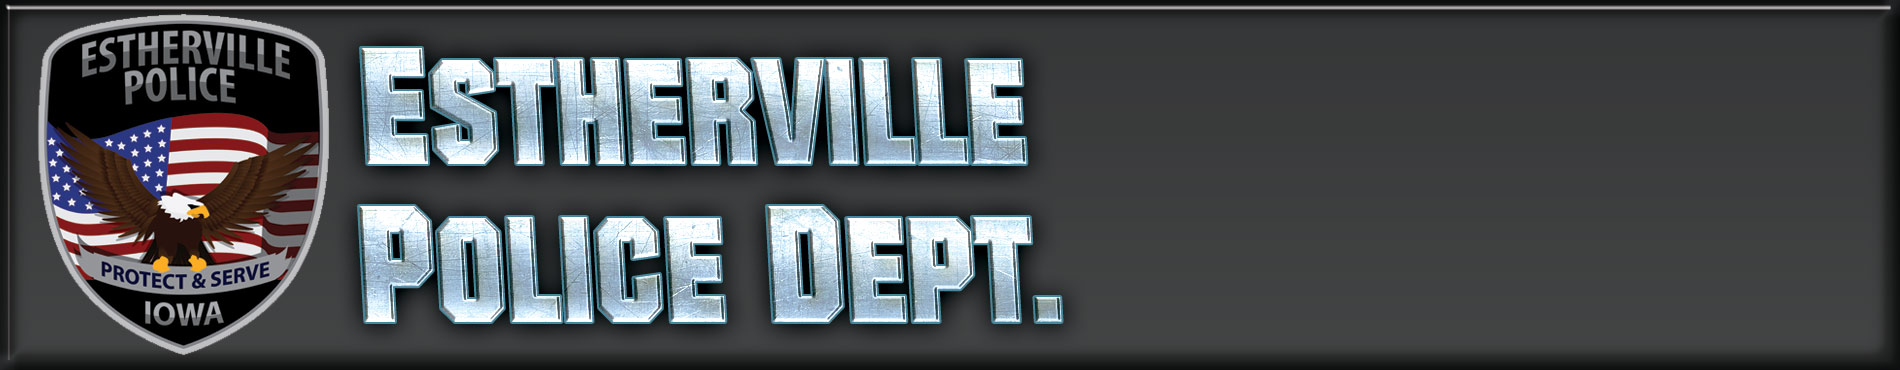 Estherville, Iowa Police Department Header